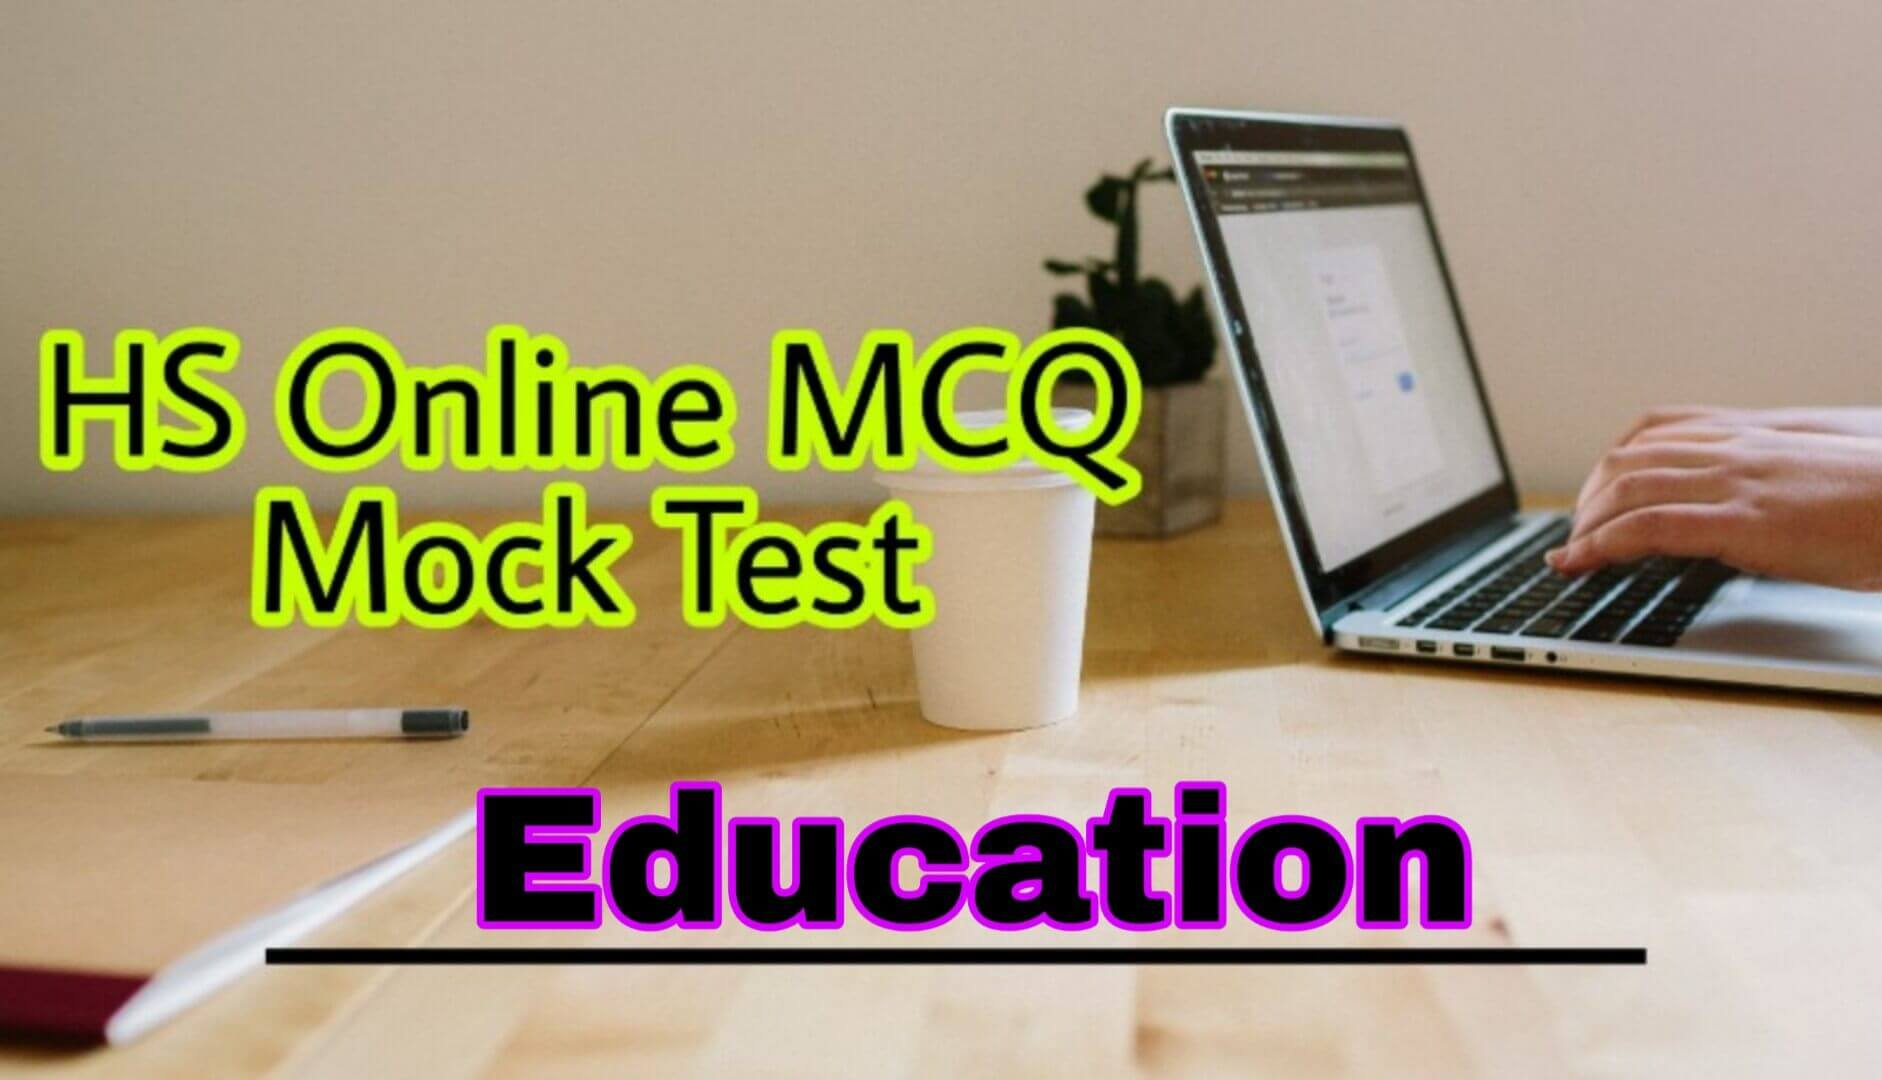 HS Education Online MCQ Test with Important Questions 1